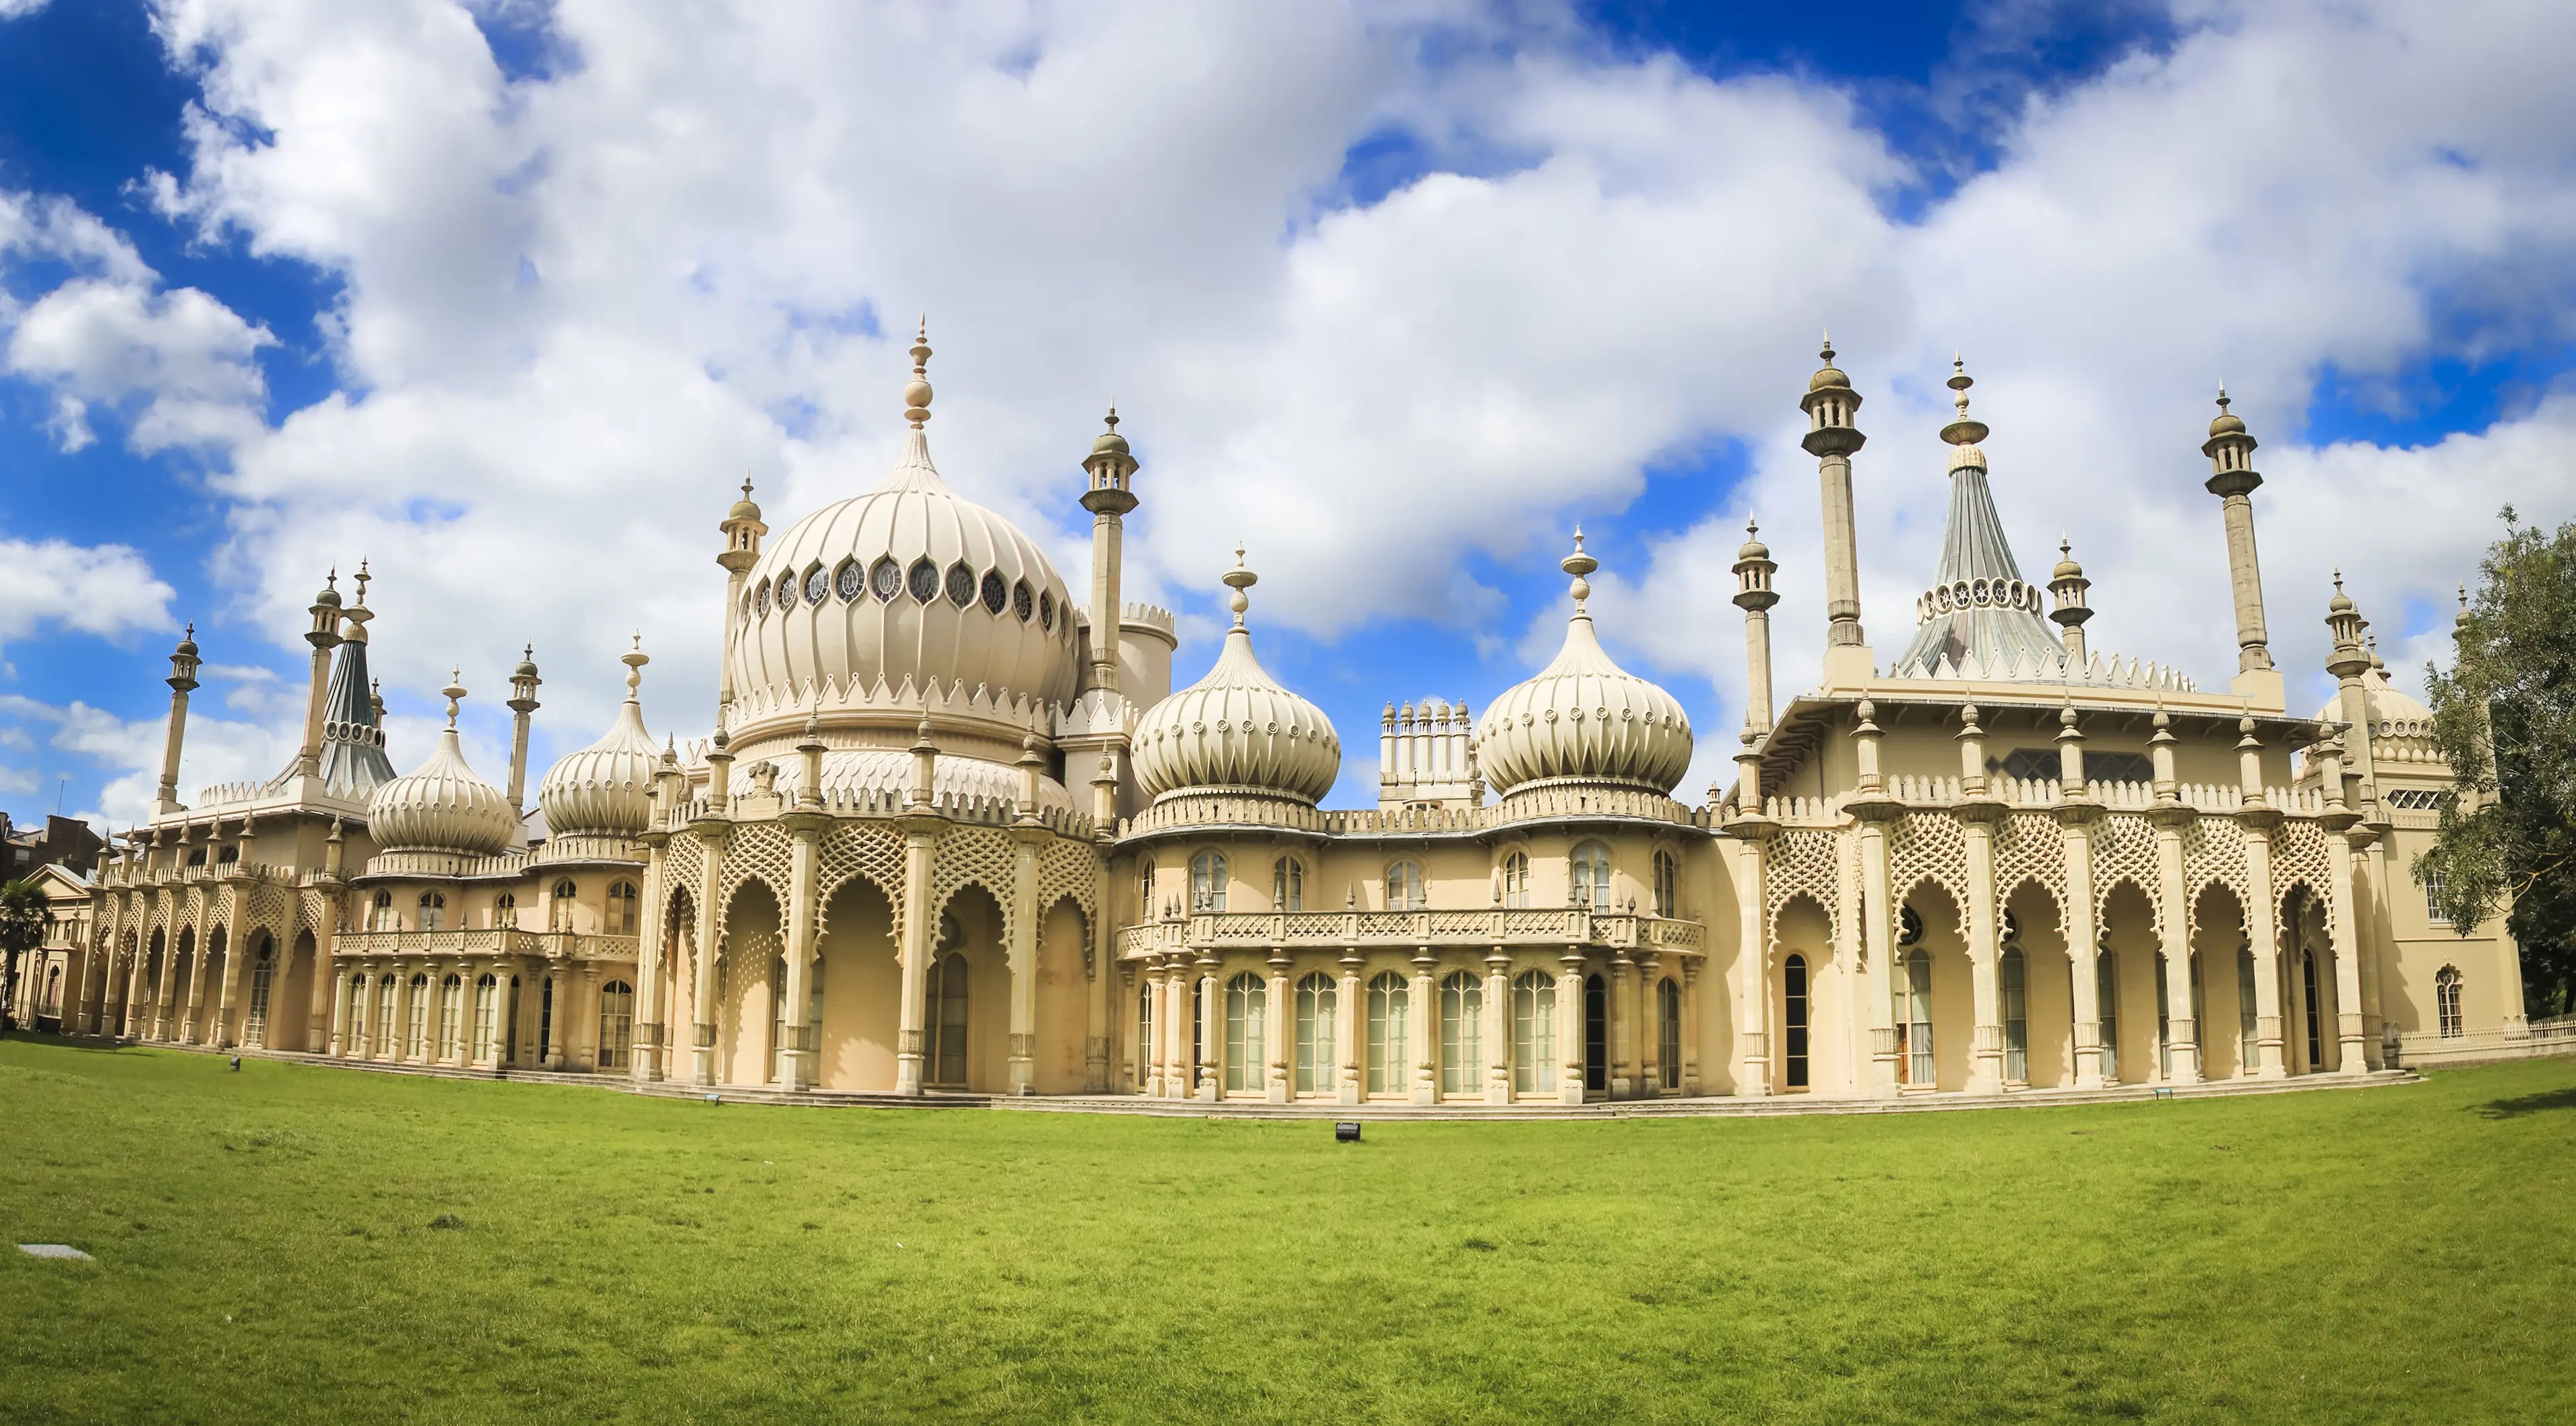 26. The Royal Pavilion in Brighton, UK, ambitiously merges British and Indian culture.